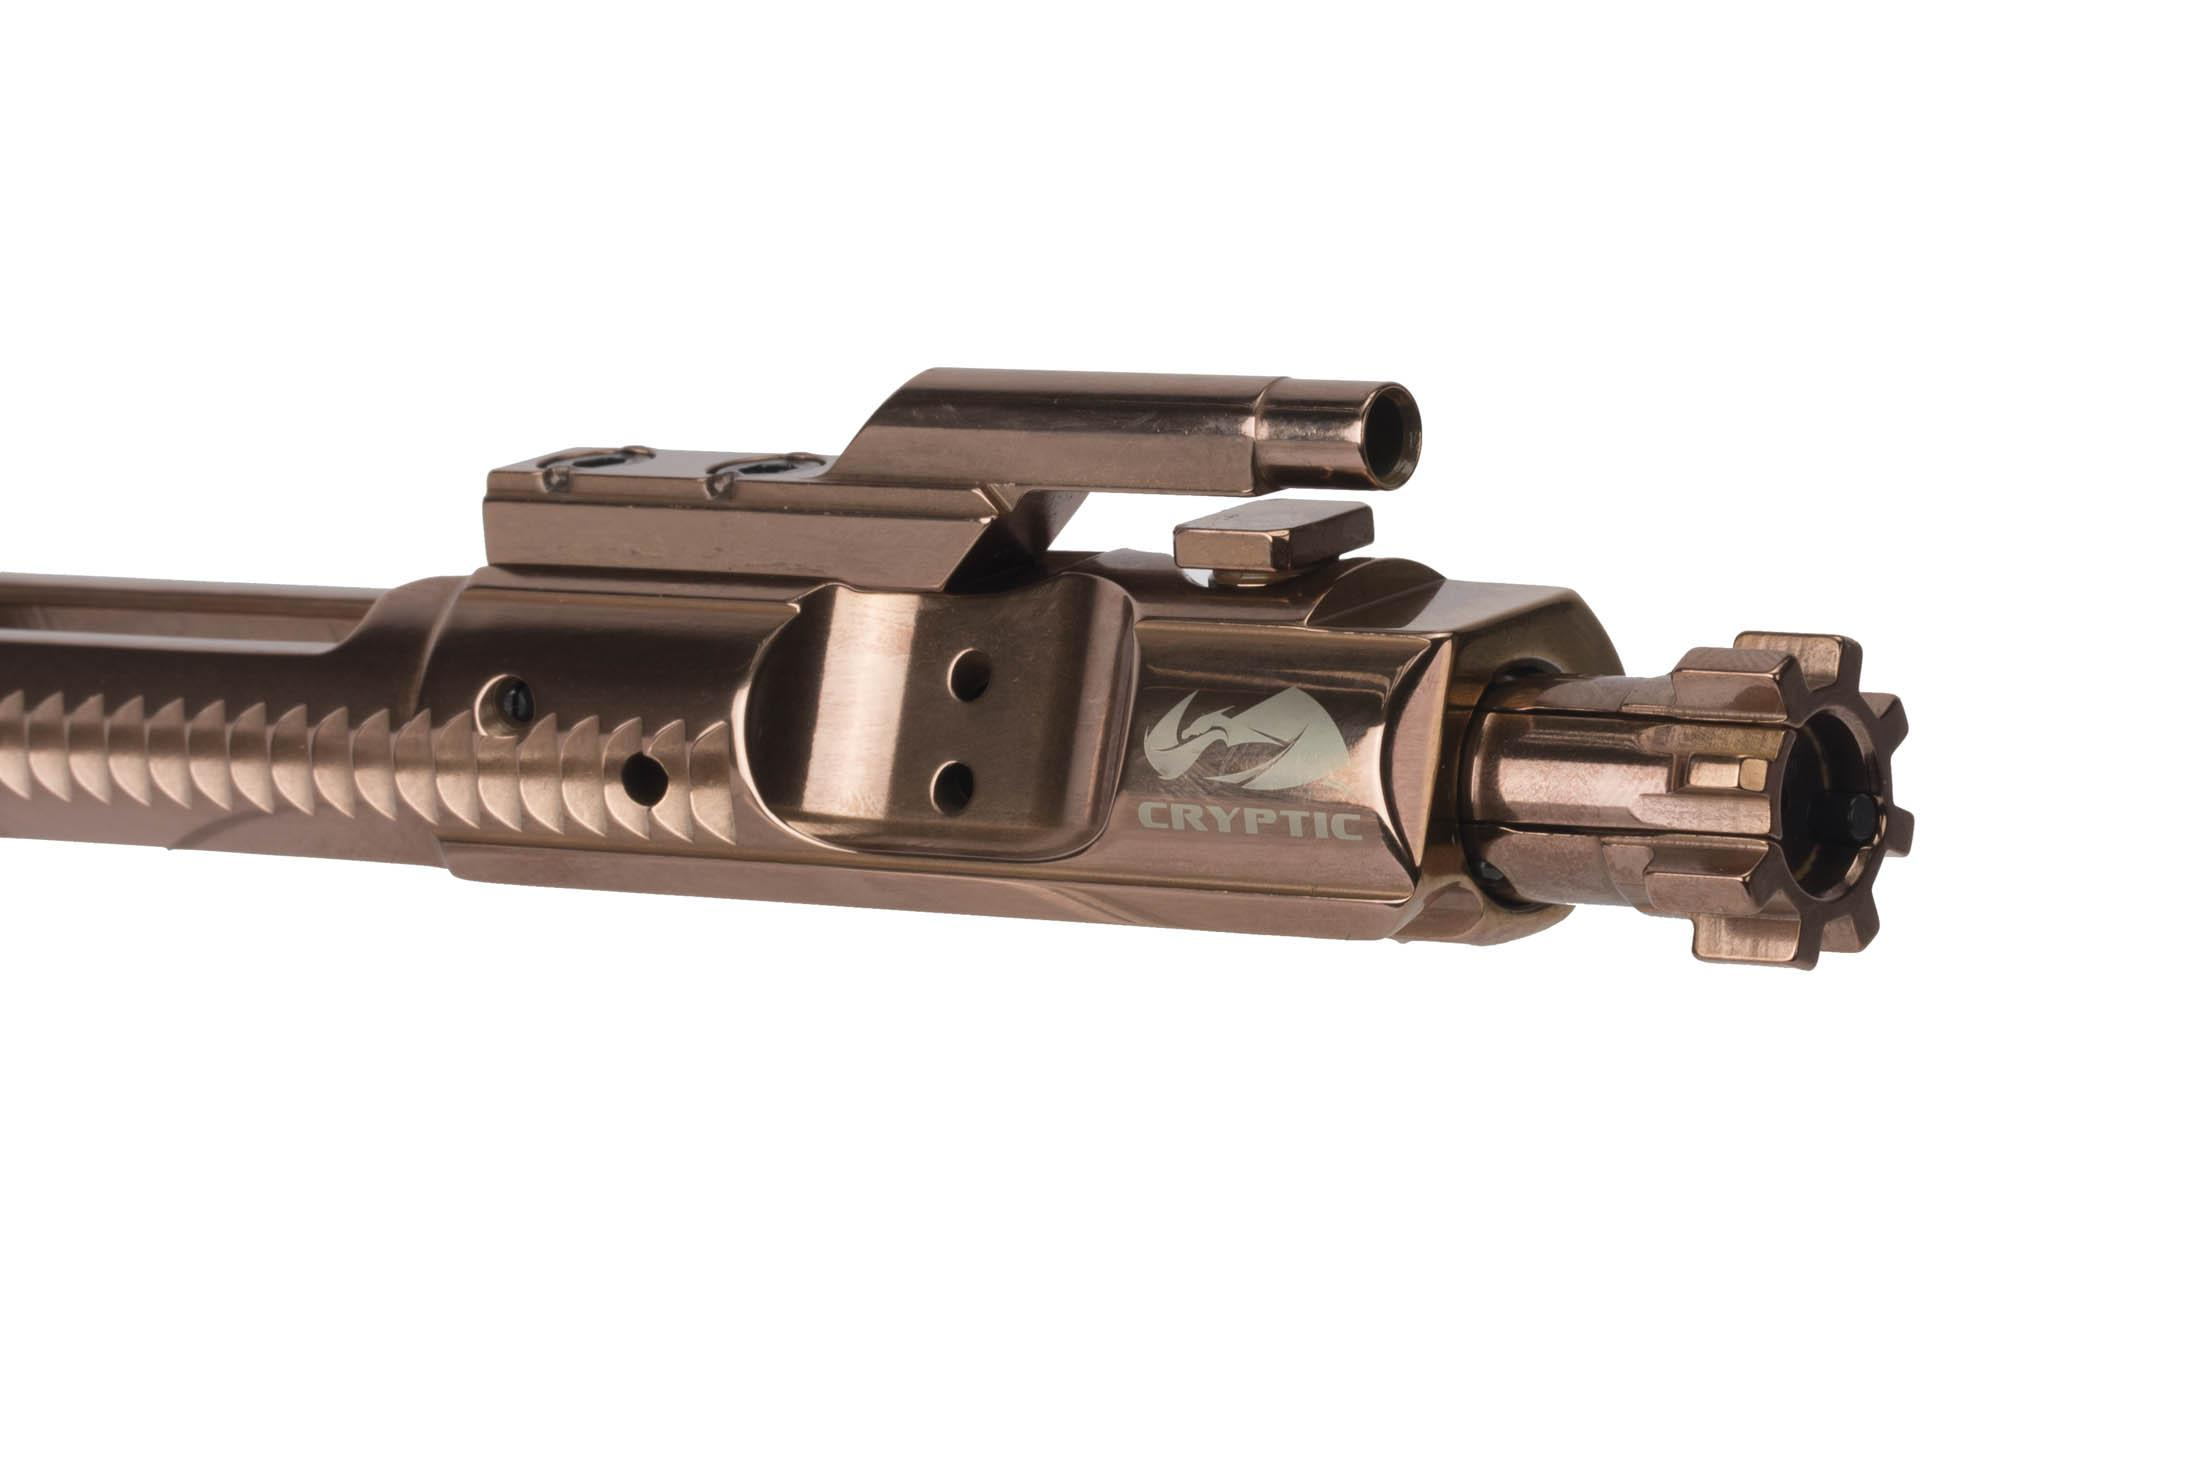 Cryptic Coatings 5.56 NATO AR-15 bcg with Mystic Bronze finish has fully MIL-SPEC construction